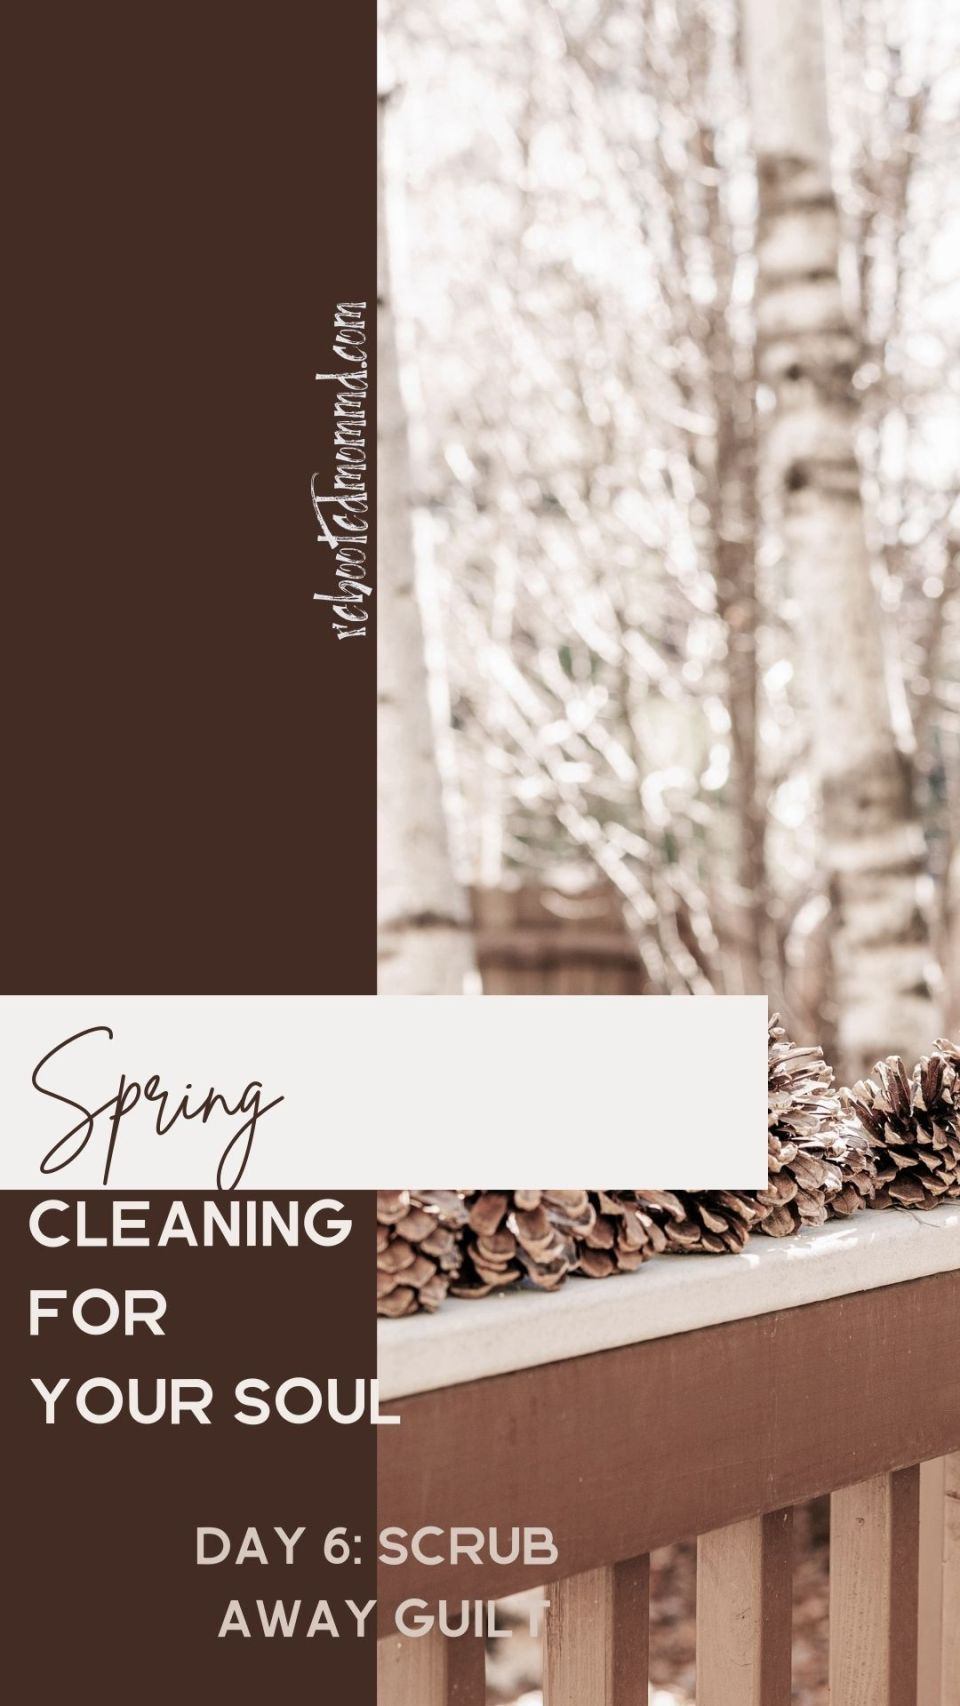 Spring Cleaning for Your Soul, Day 6: Scrub Away Guilt